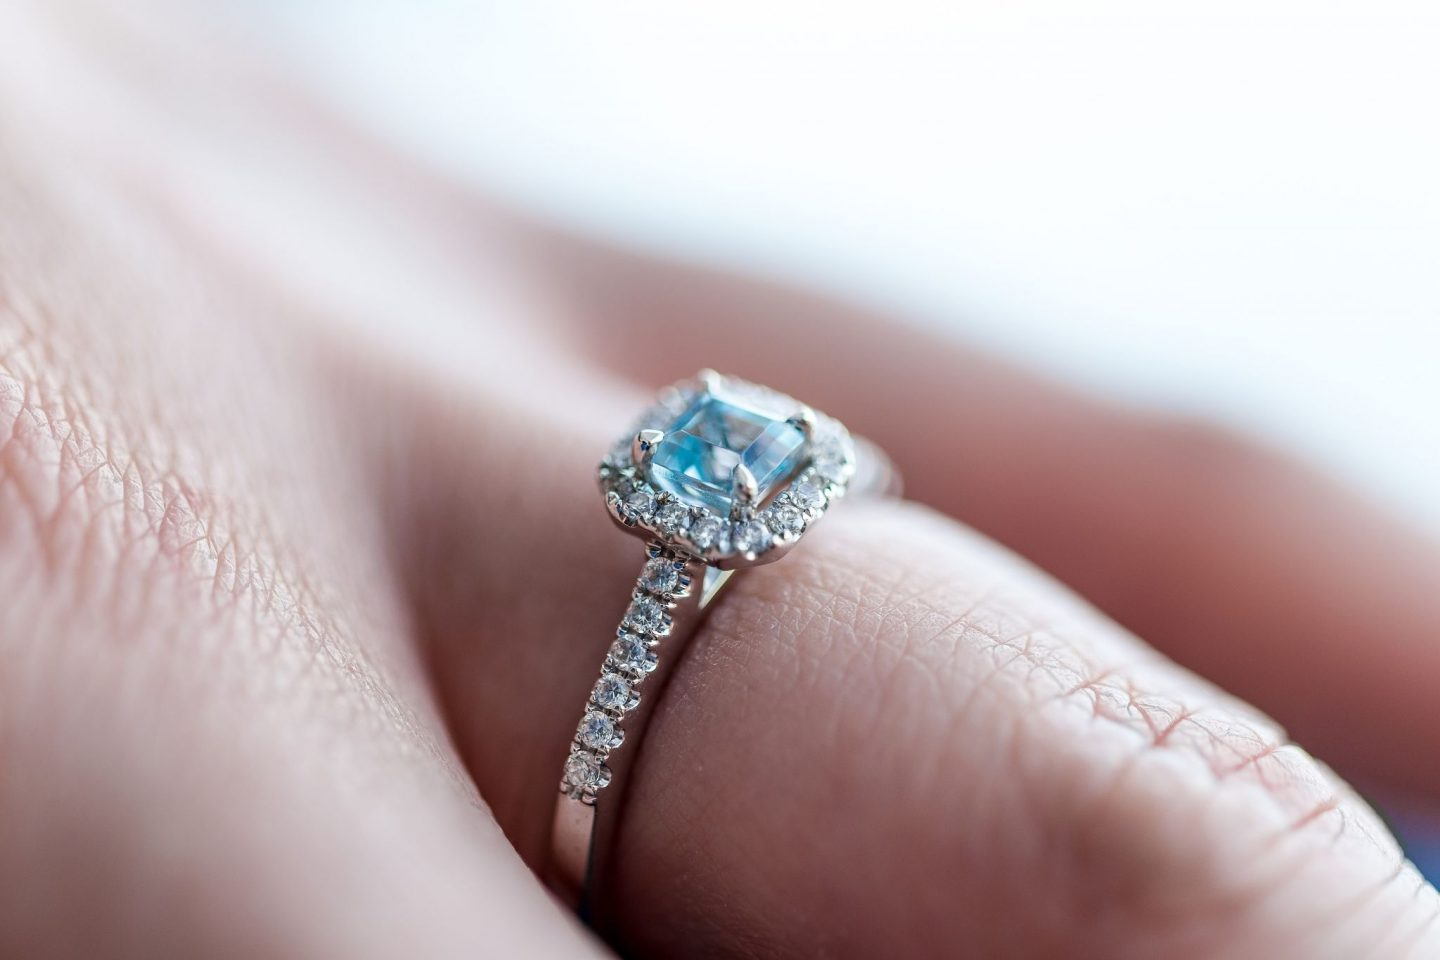 5 MYTHS AND MISCONCEPTIONS ABOUT LAB GROWN DIAMONDS: ARE THEY THE REAL DEAL?